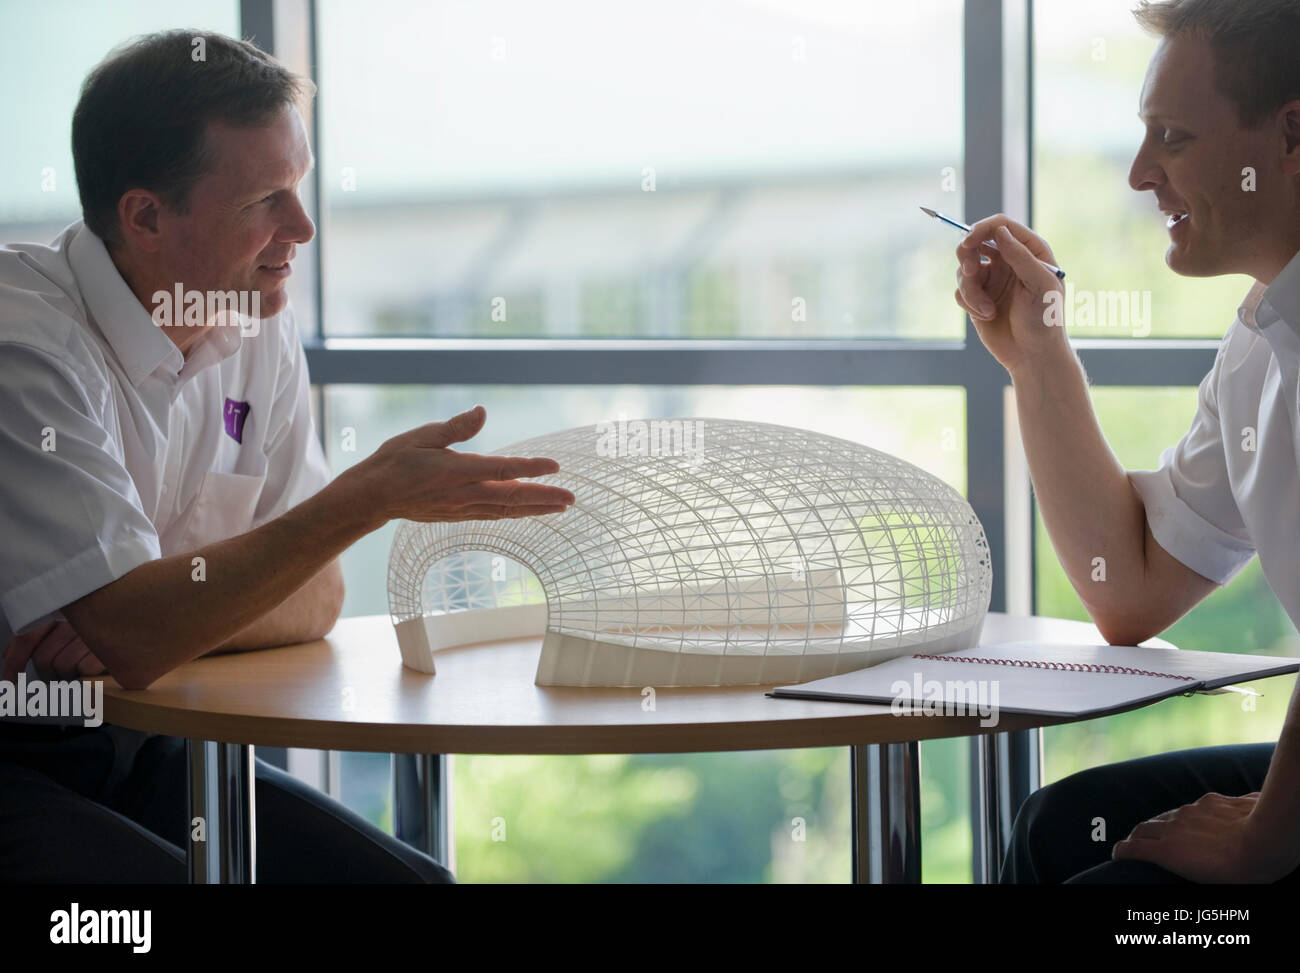 Complex 3-dimensional object produced by Selective Laser Sintering (SLS) under discussion. - Stock Image